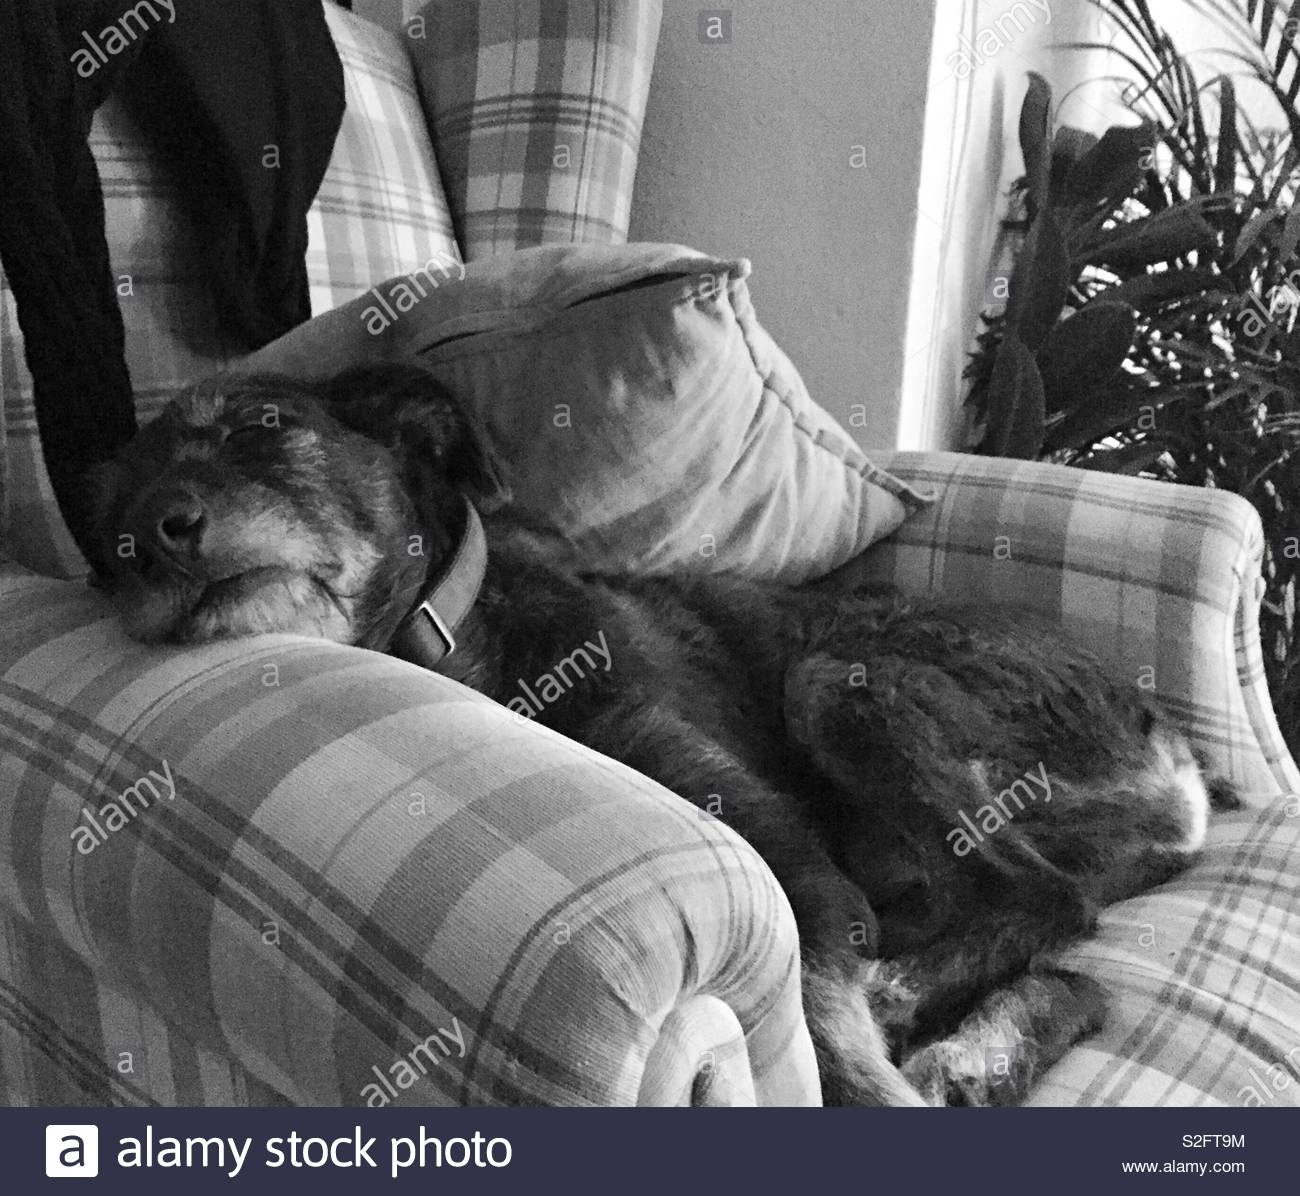 Zambo relaxing in he's comfy chair - Stock Image